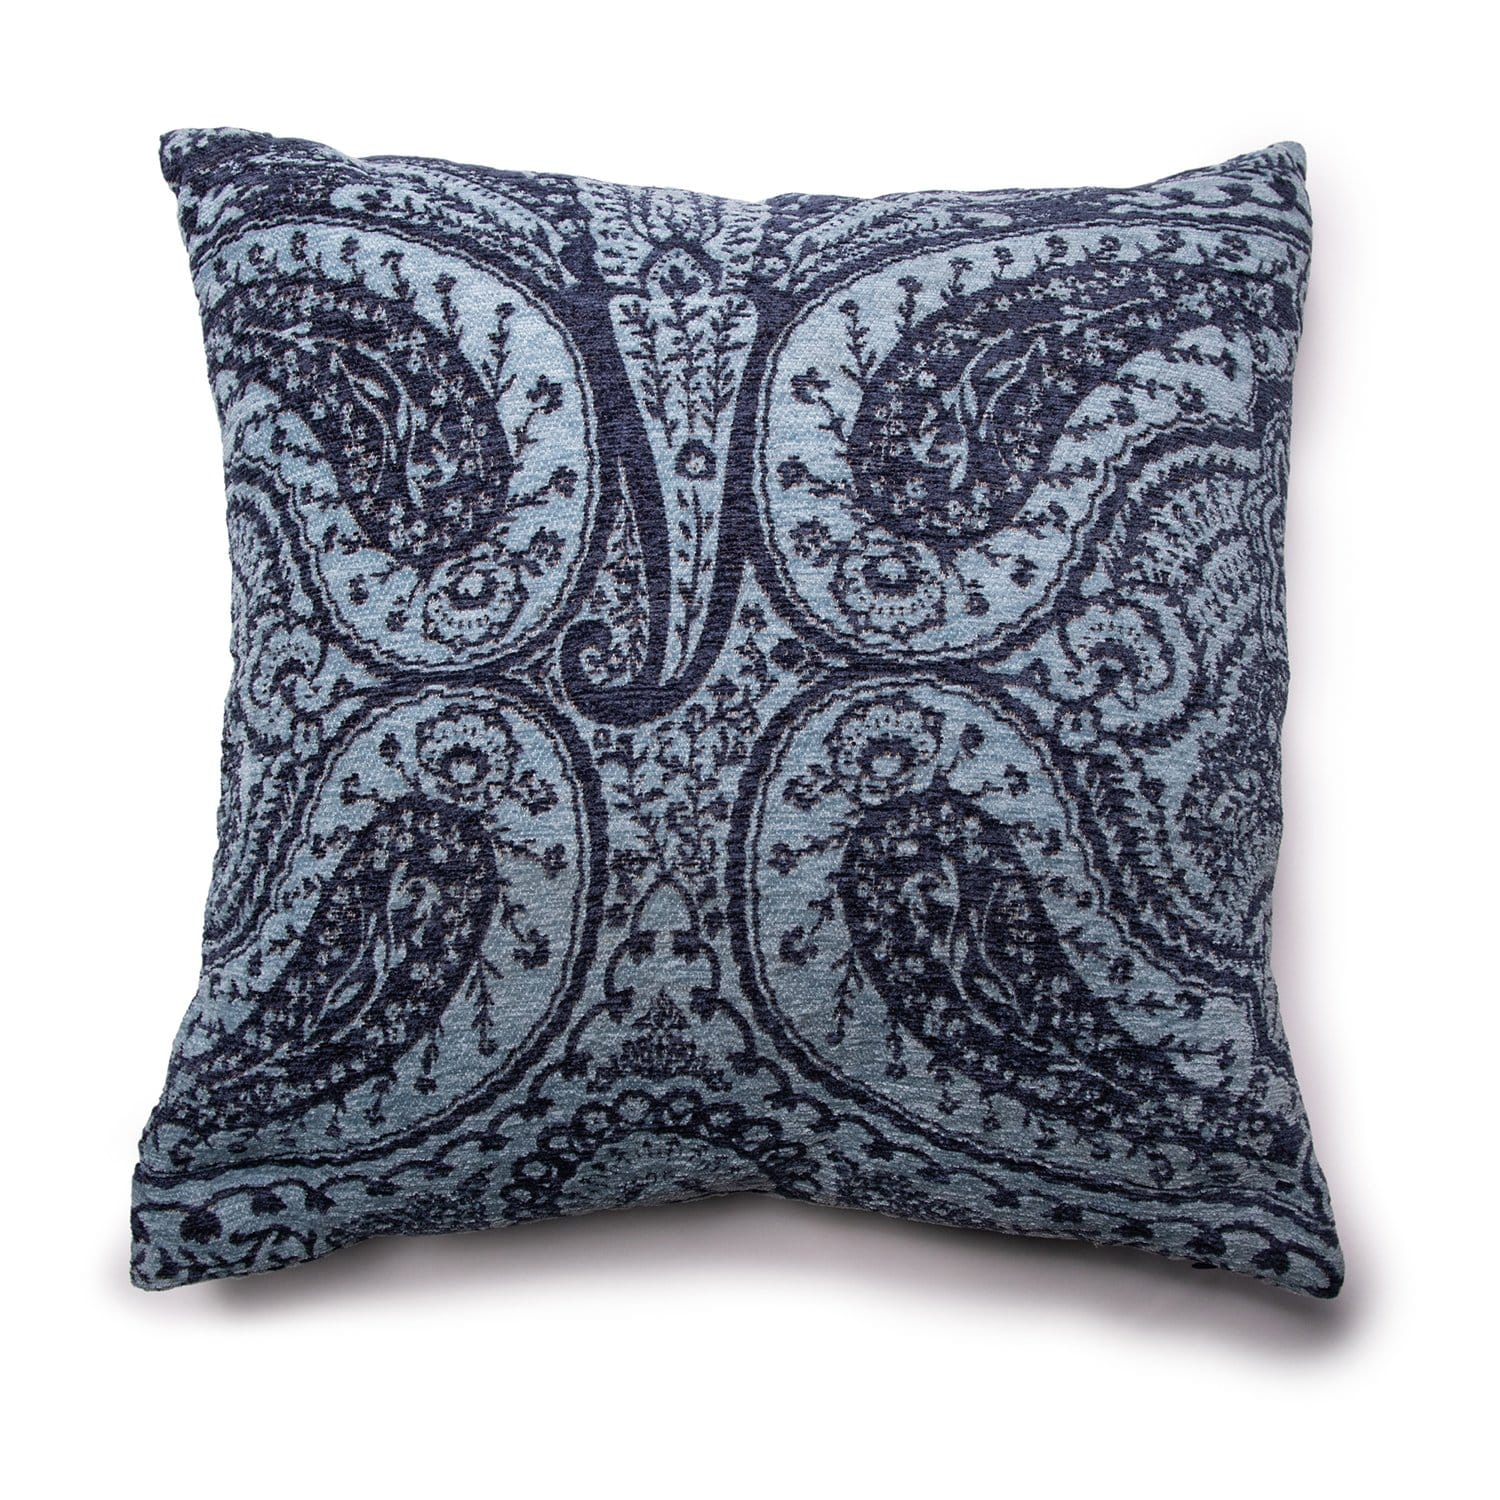 "Davet 20"" Square Decorative Pillow - 20 X 20 / Blue"